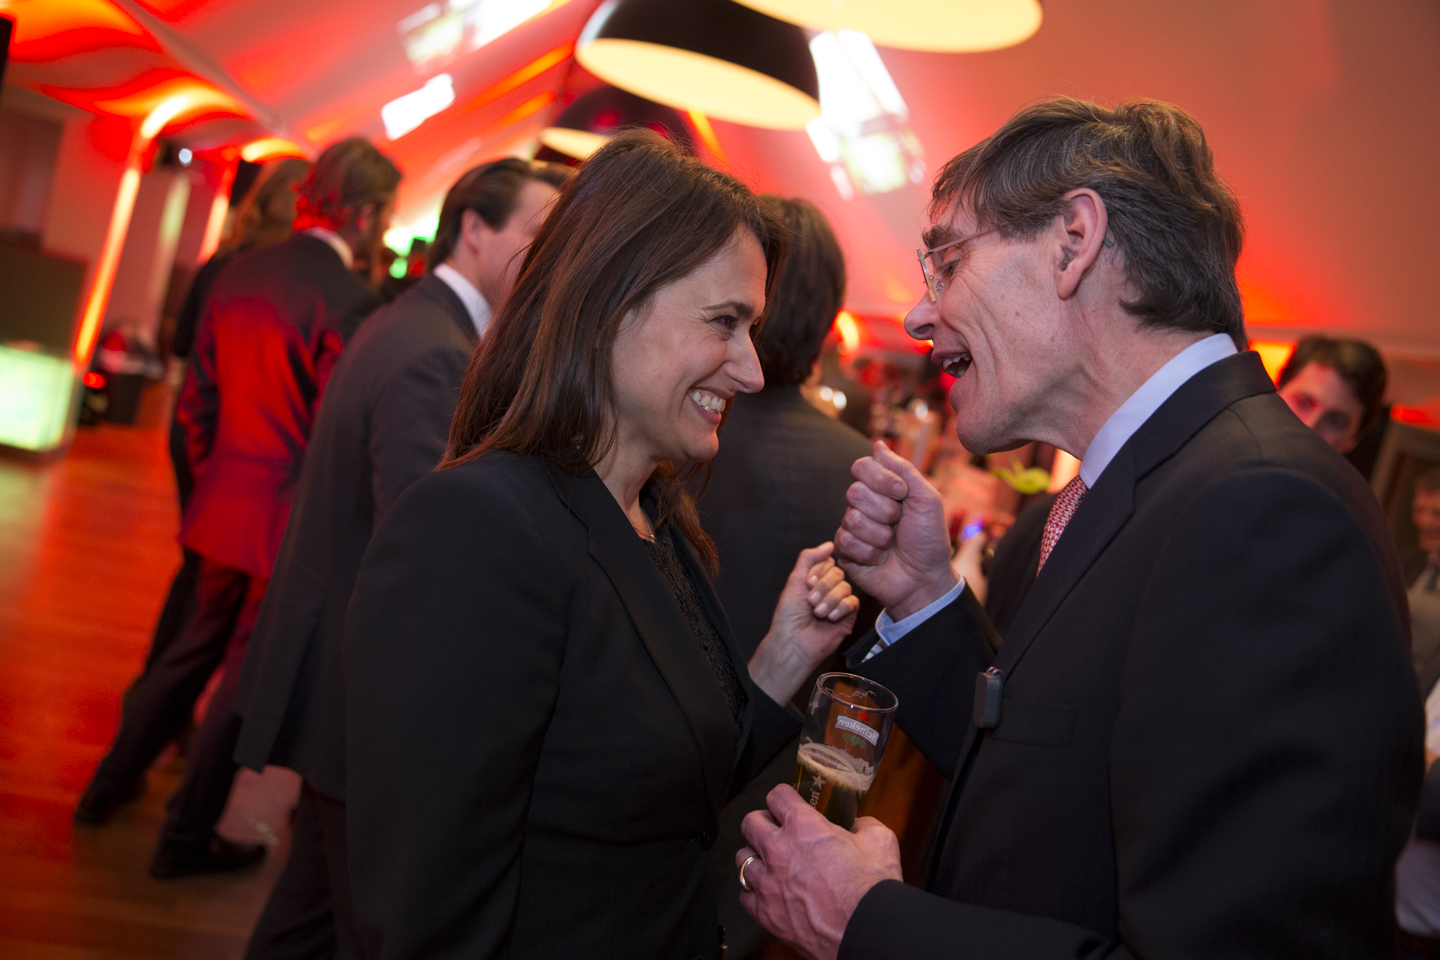 Véronique Schyns and René Hooft Graafland and his farewell reception, Amsterdam, April 2015. Photo credits Sander Stoepker.